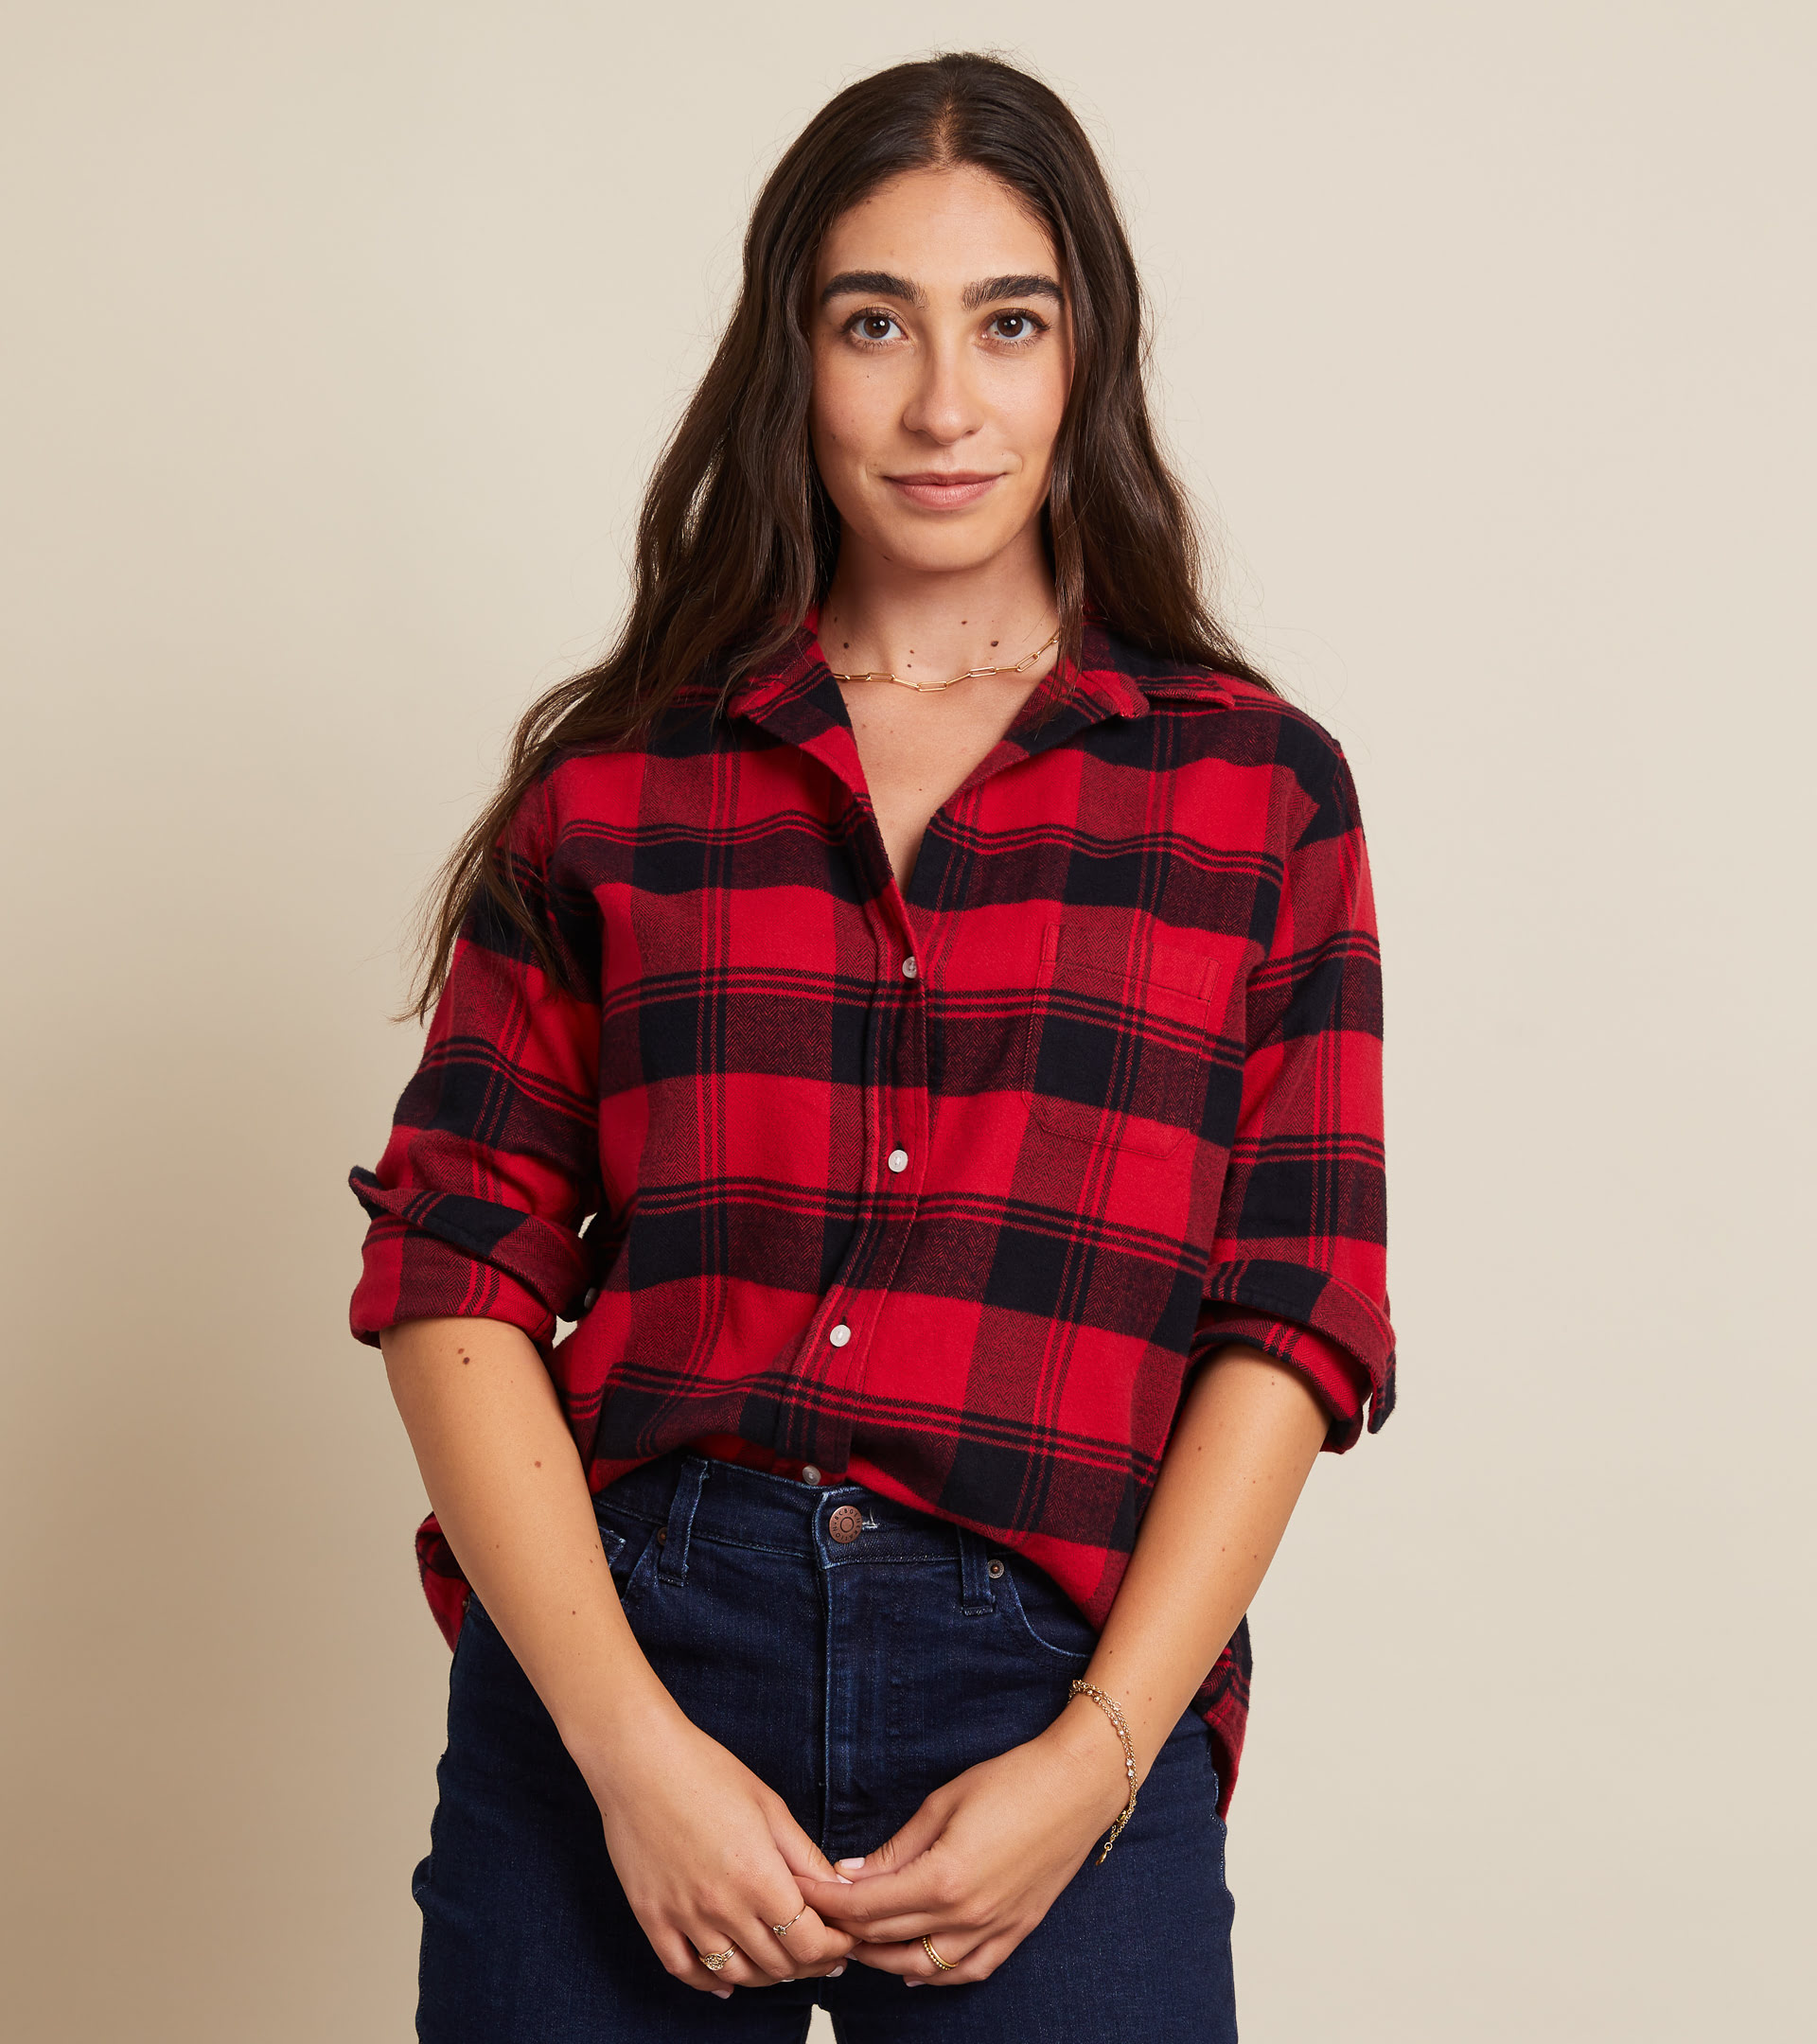 The Hero Red with Black Plaid, Plush Flannel view 1